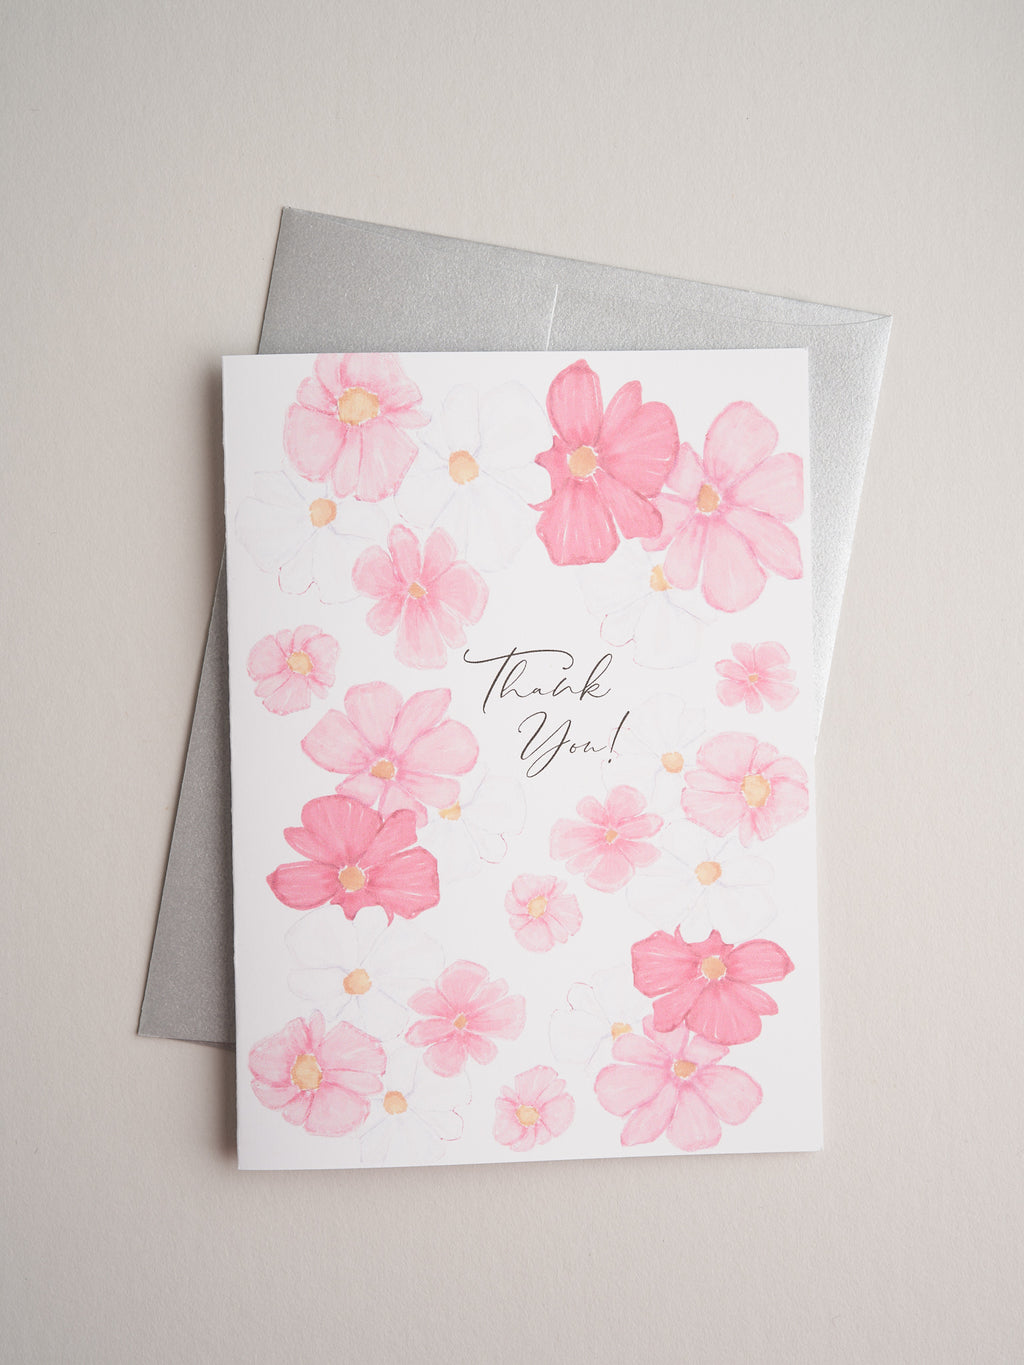 TQ-14-17 | Flowers - Greeting Cards - Queen & Grace